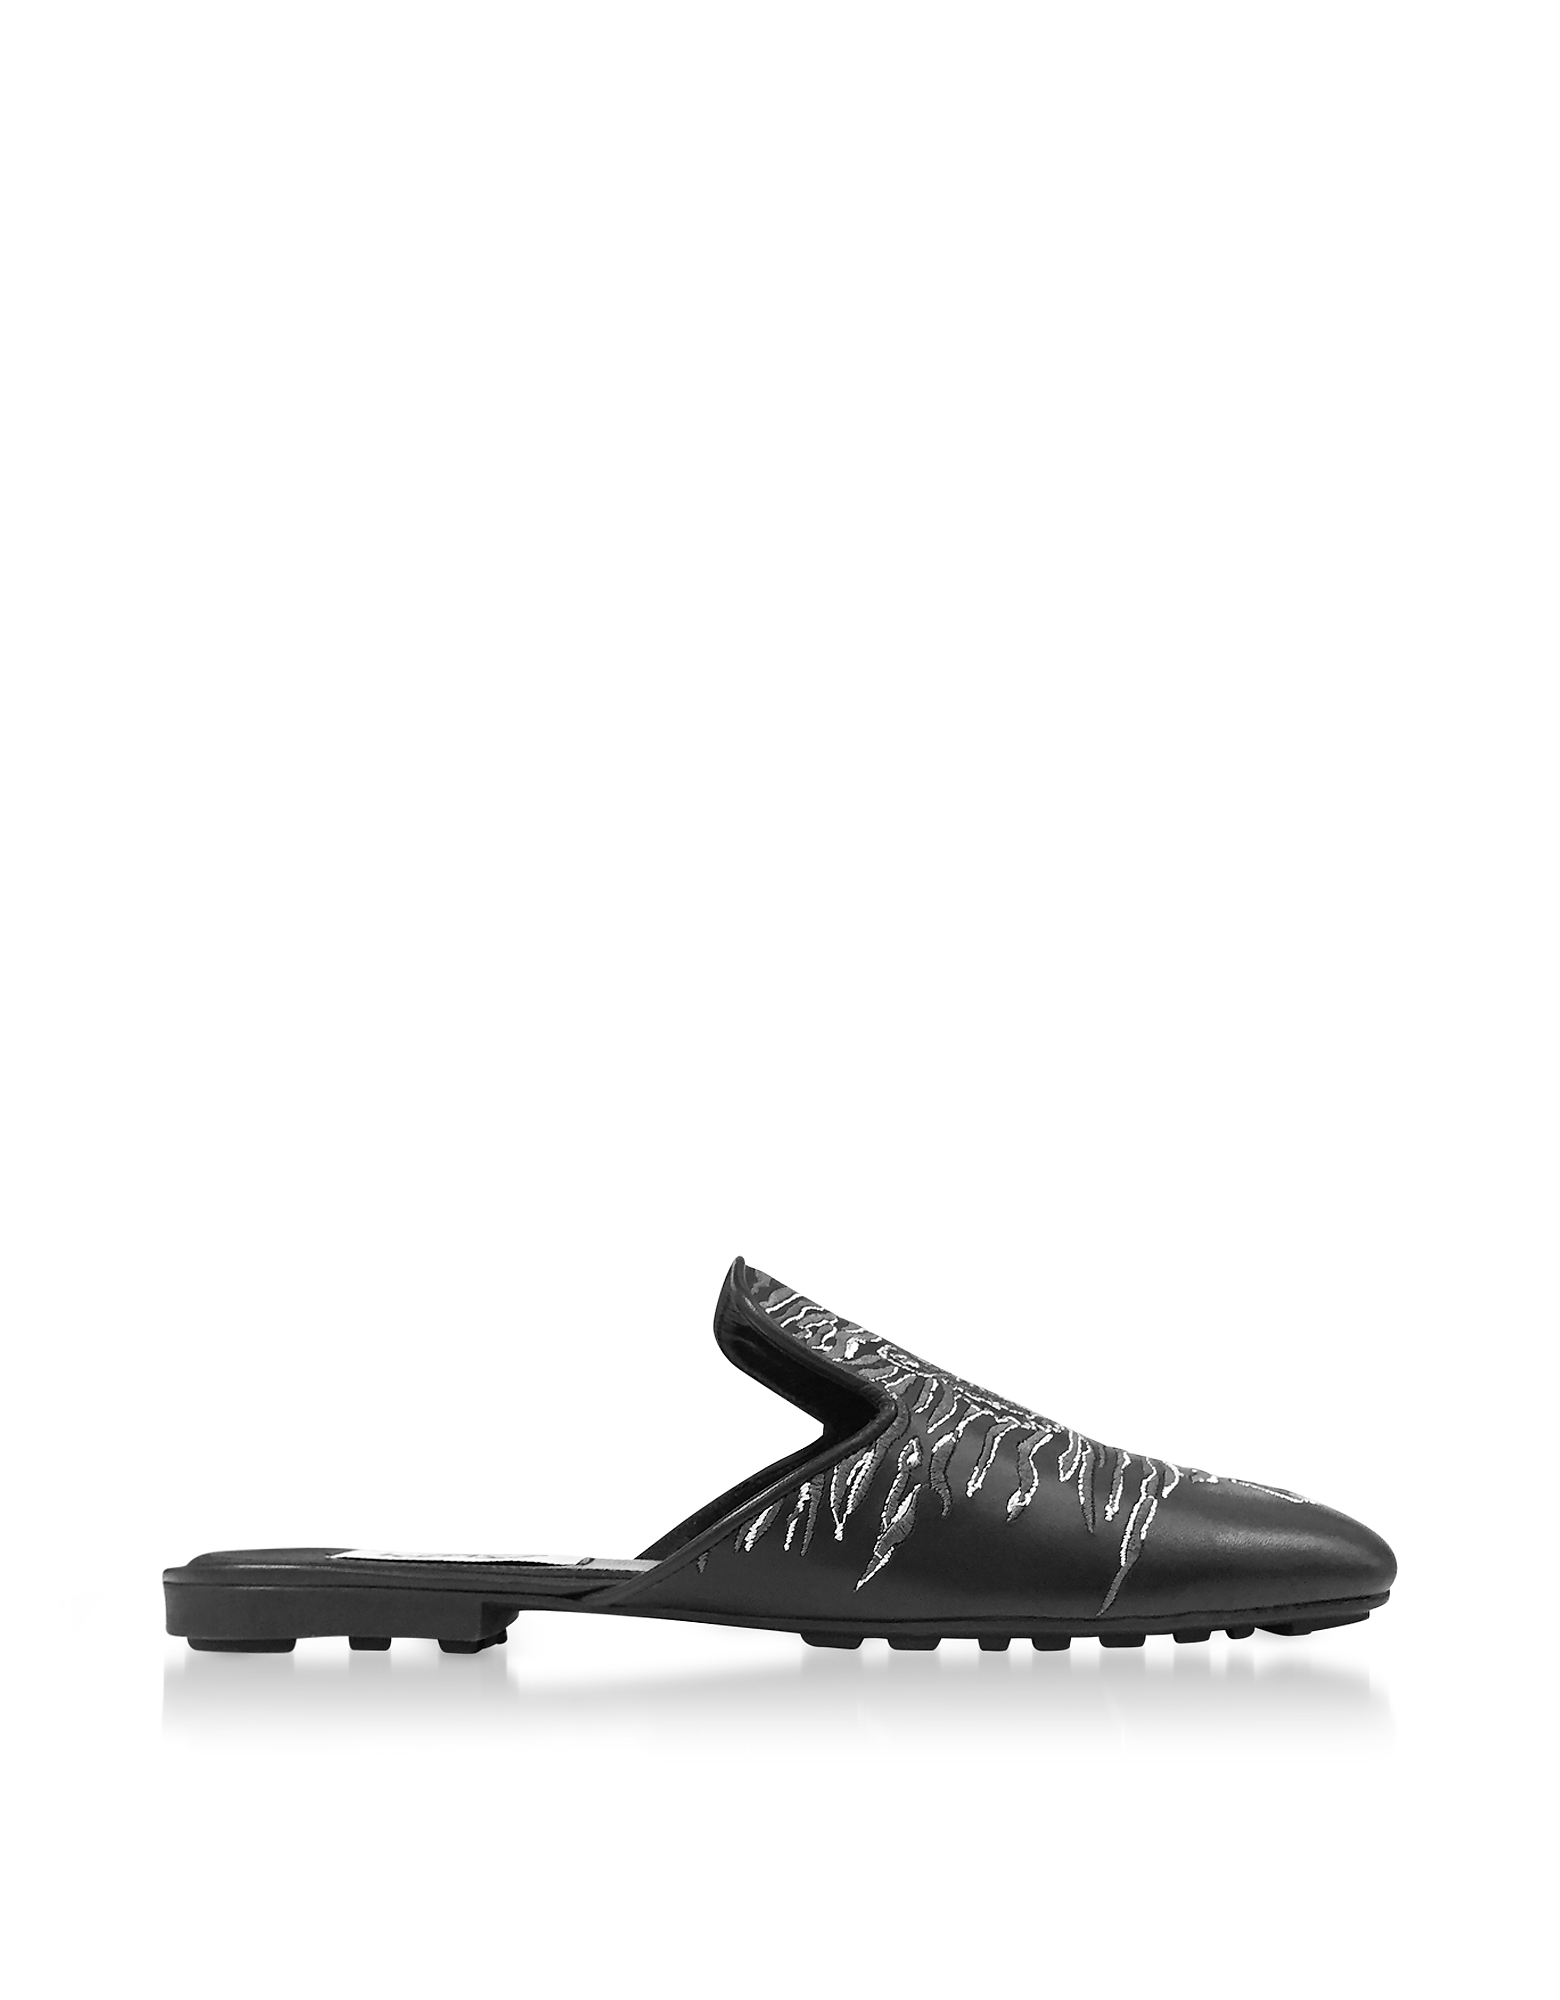 Kenzo Shoes, Black Leather Geo Tiger Flat Mules